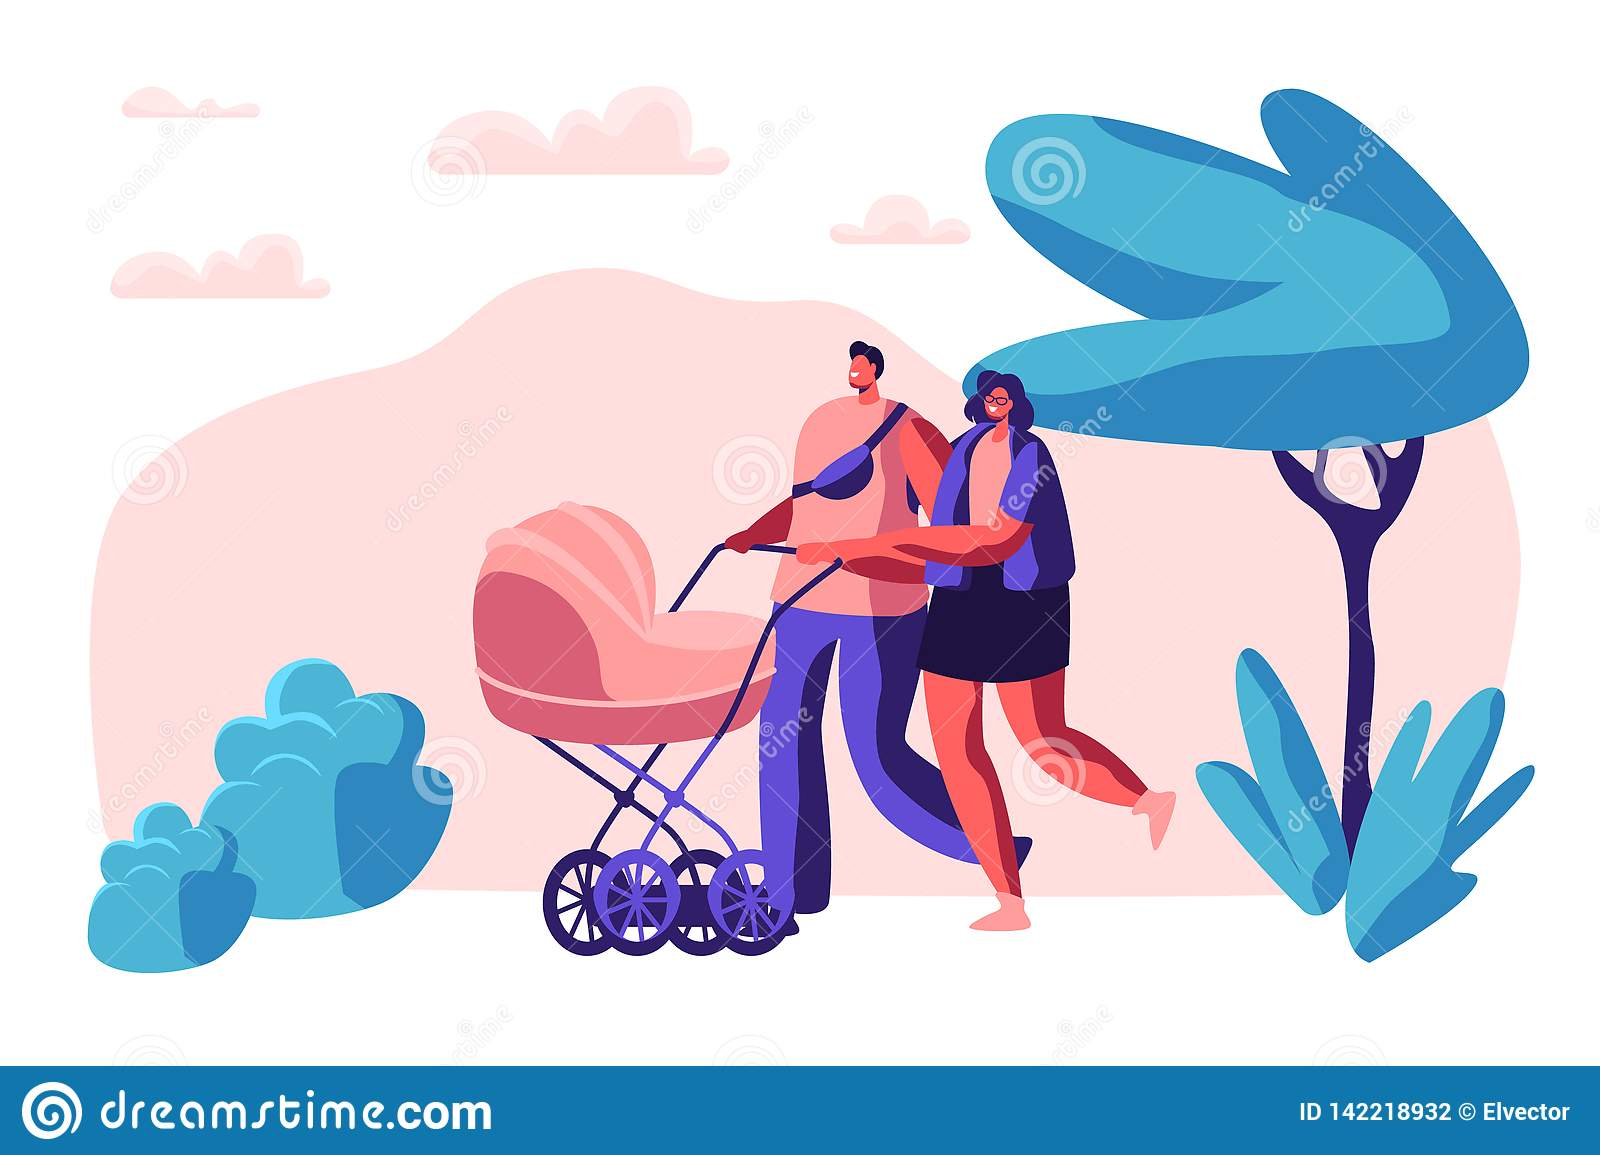 Walk Family with Baby Stroller in Park. Happy Mother and Father Together Walking with Newborn Kid. Parents Spend Leisure Time